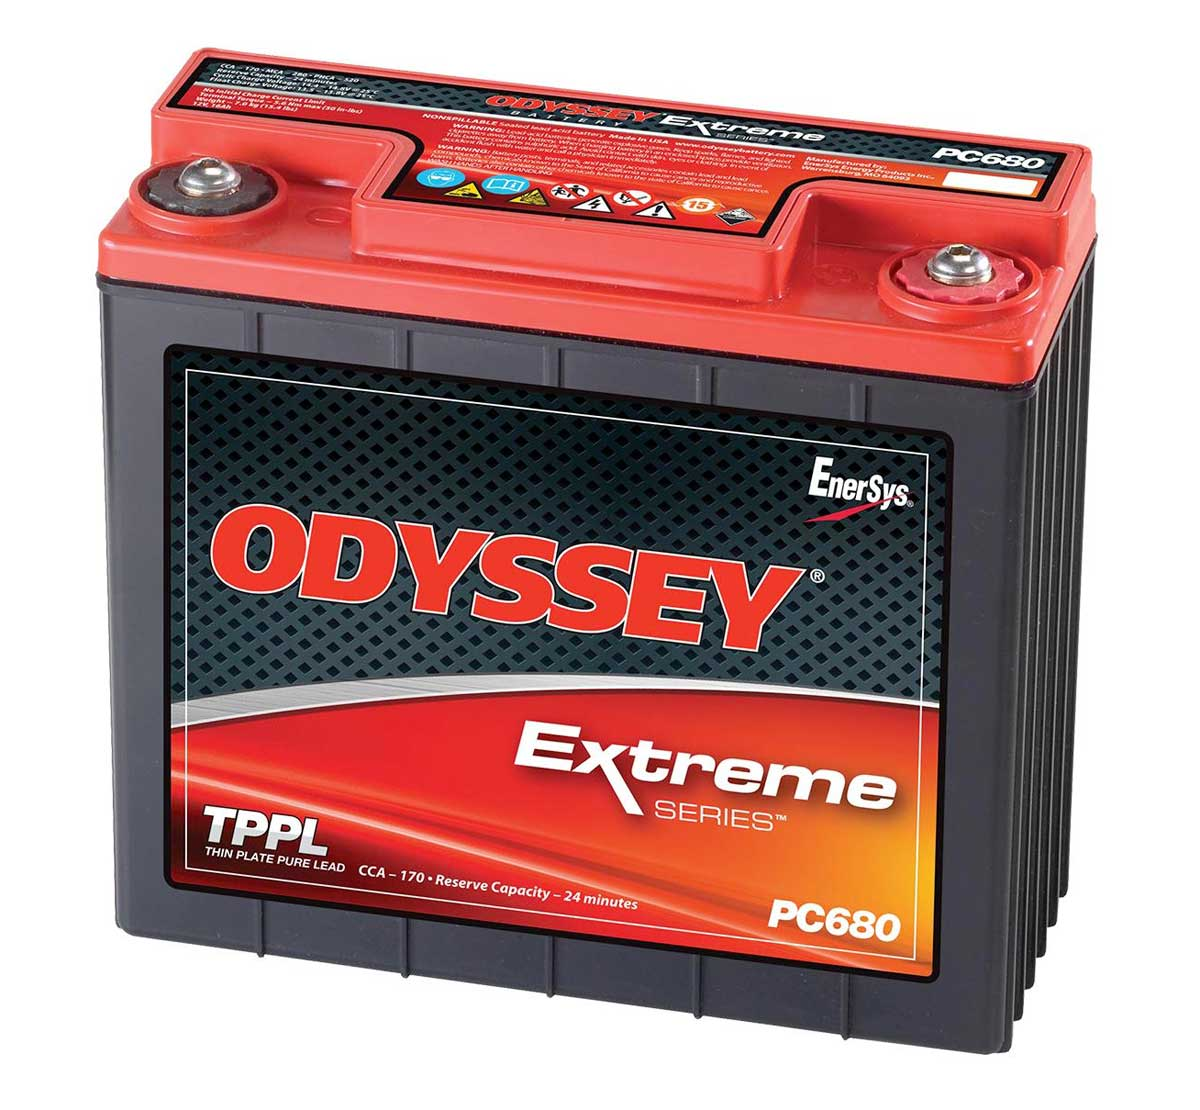 Odyssey Pc680 Extreme Racing 25 Starter Battery  Free Delivery